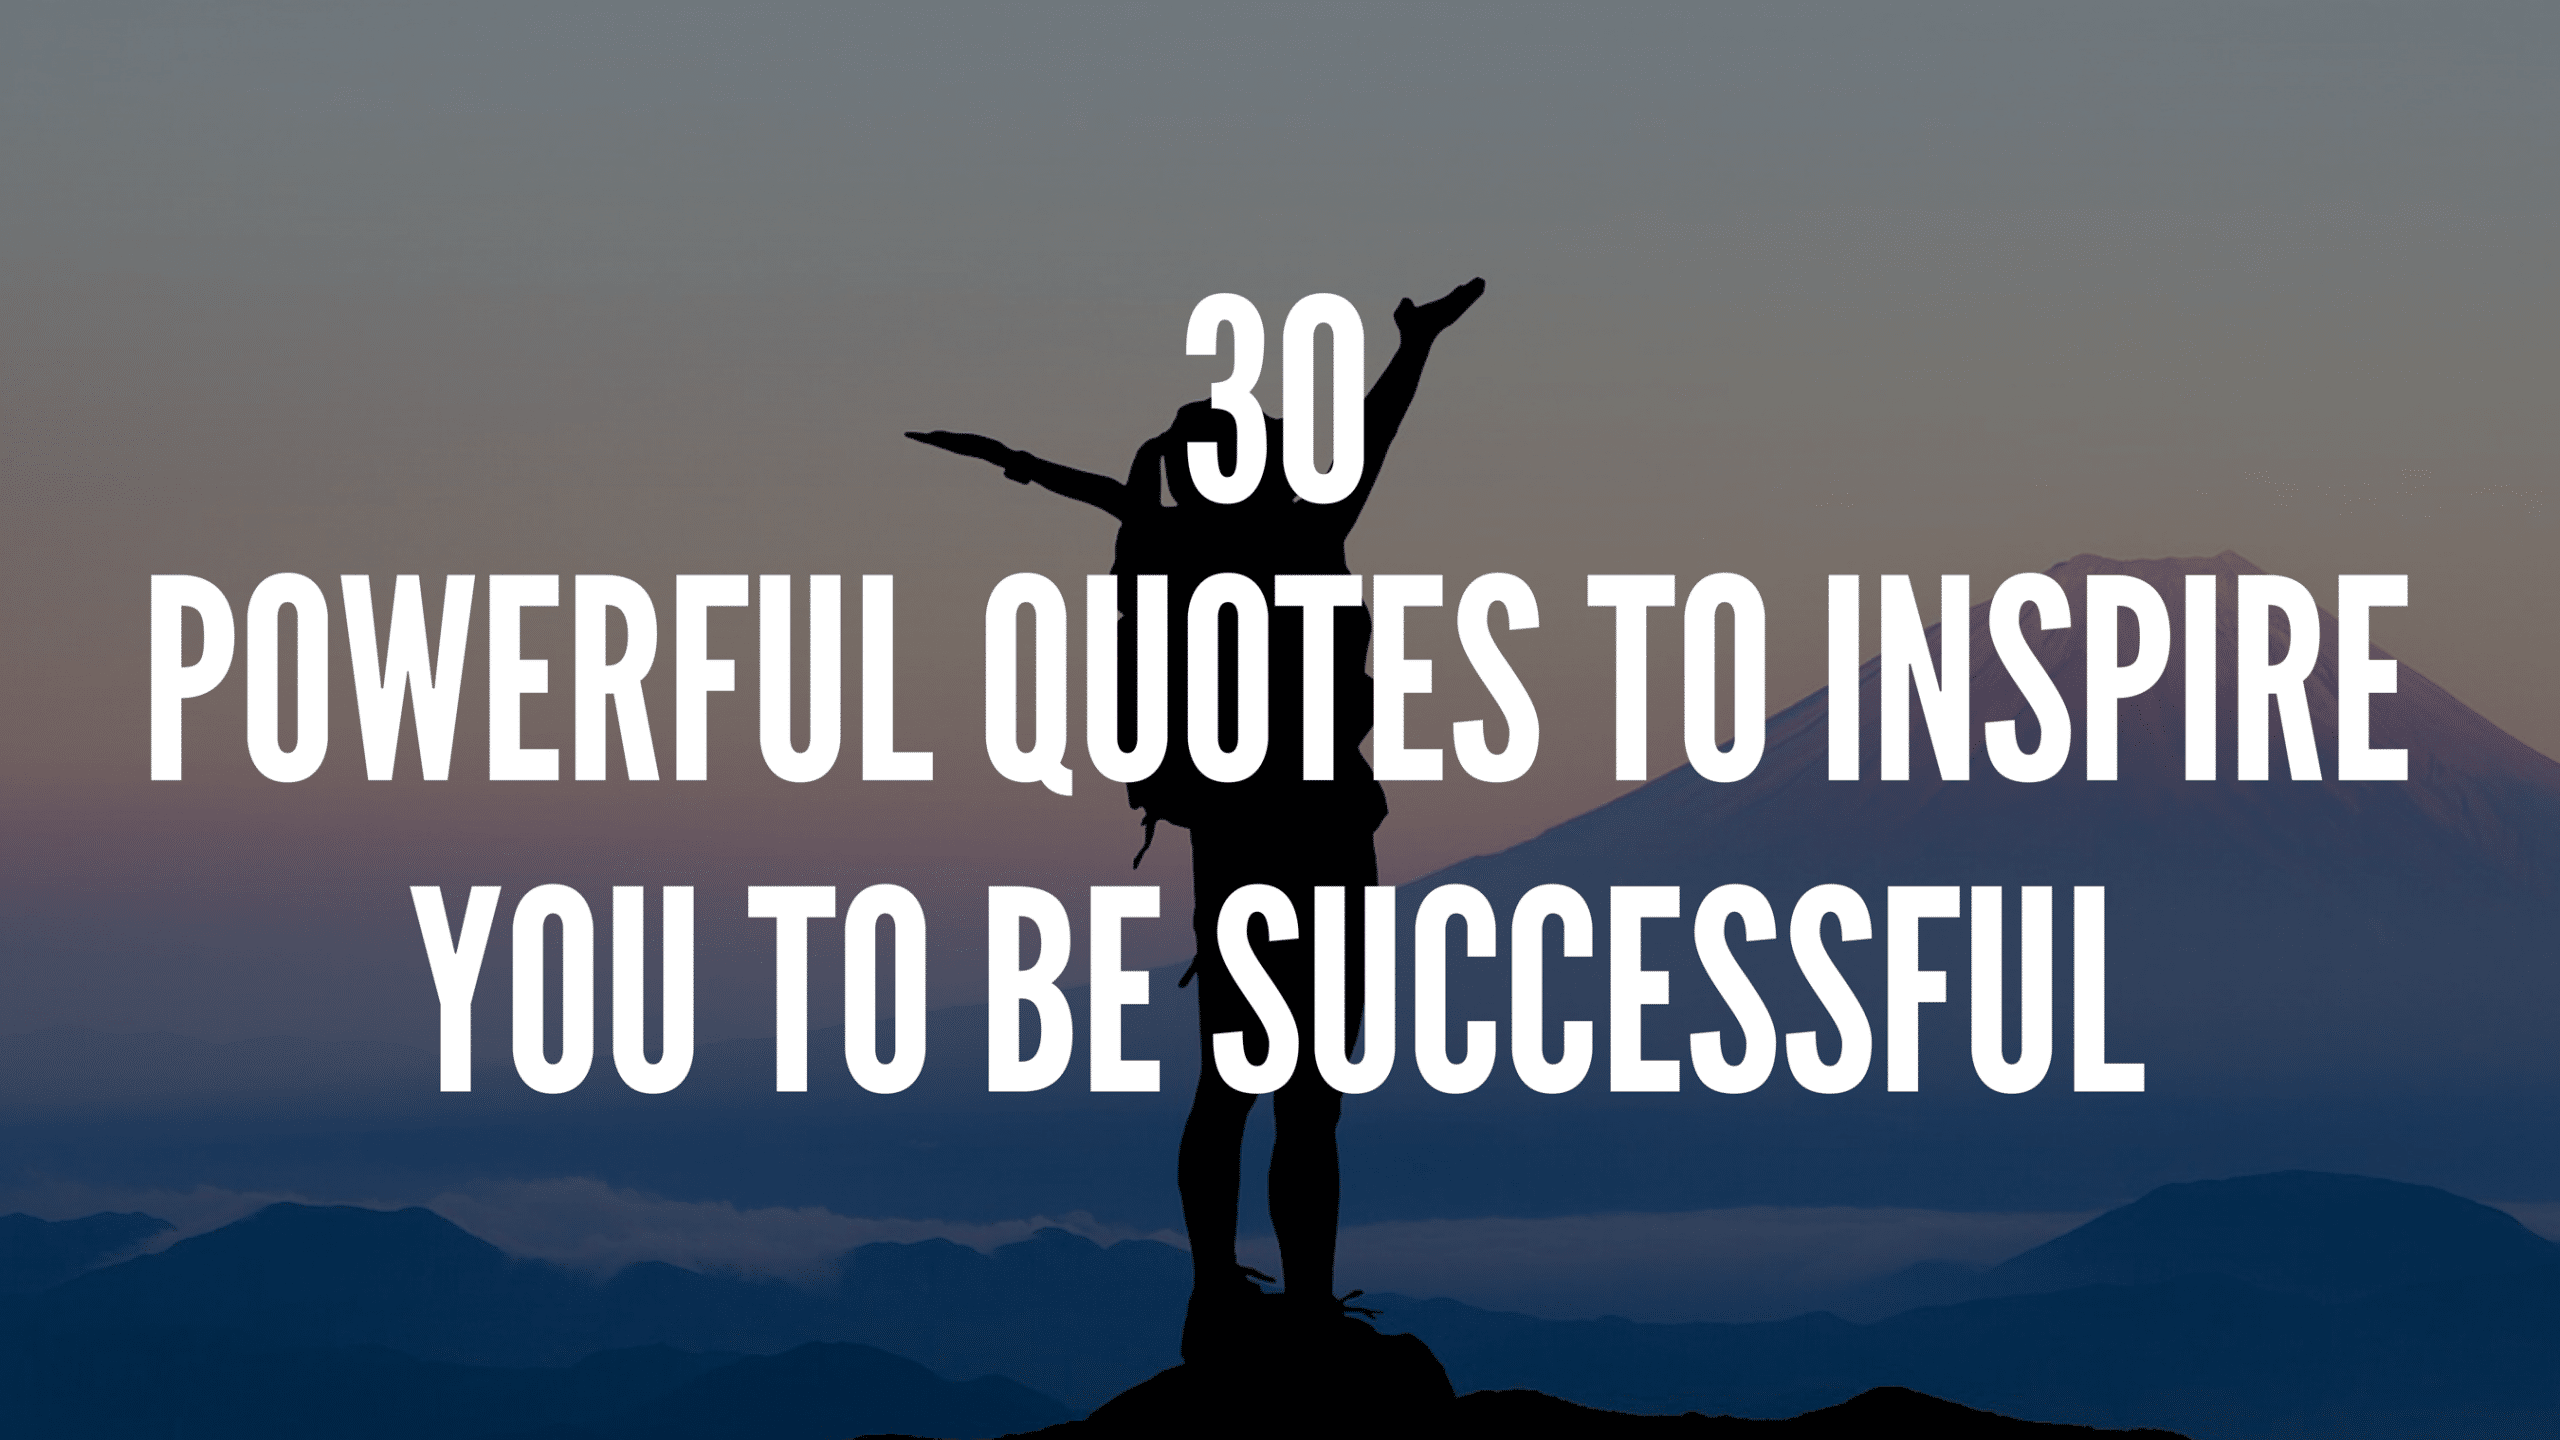 30 Powerful Quotes To Inspire You To Be Successful